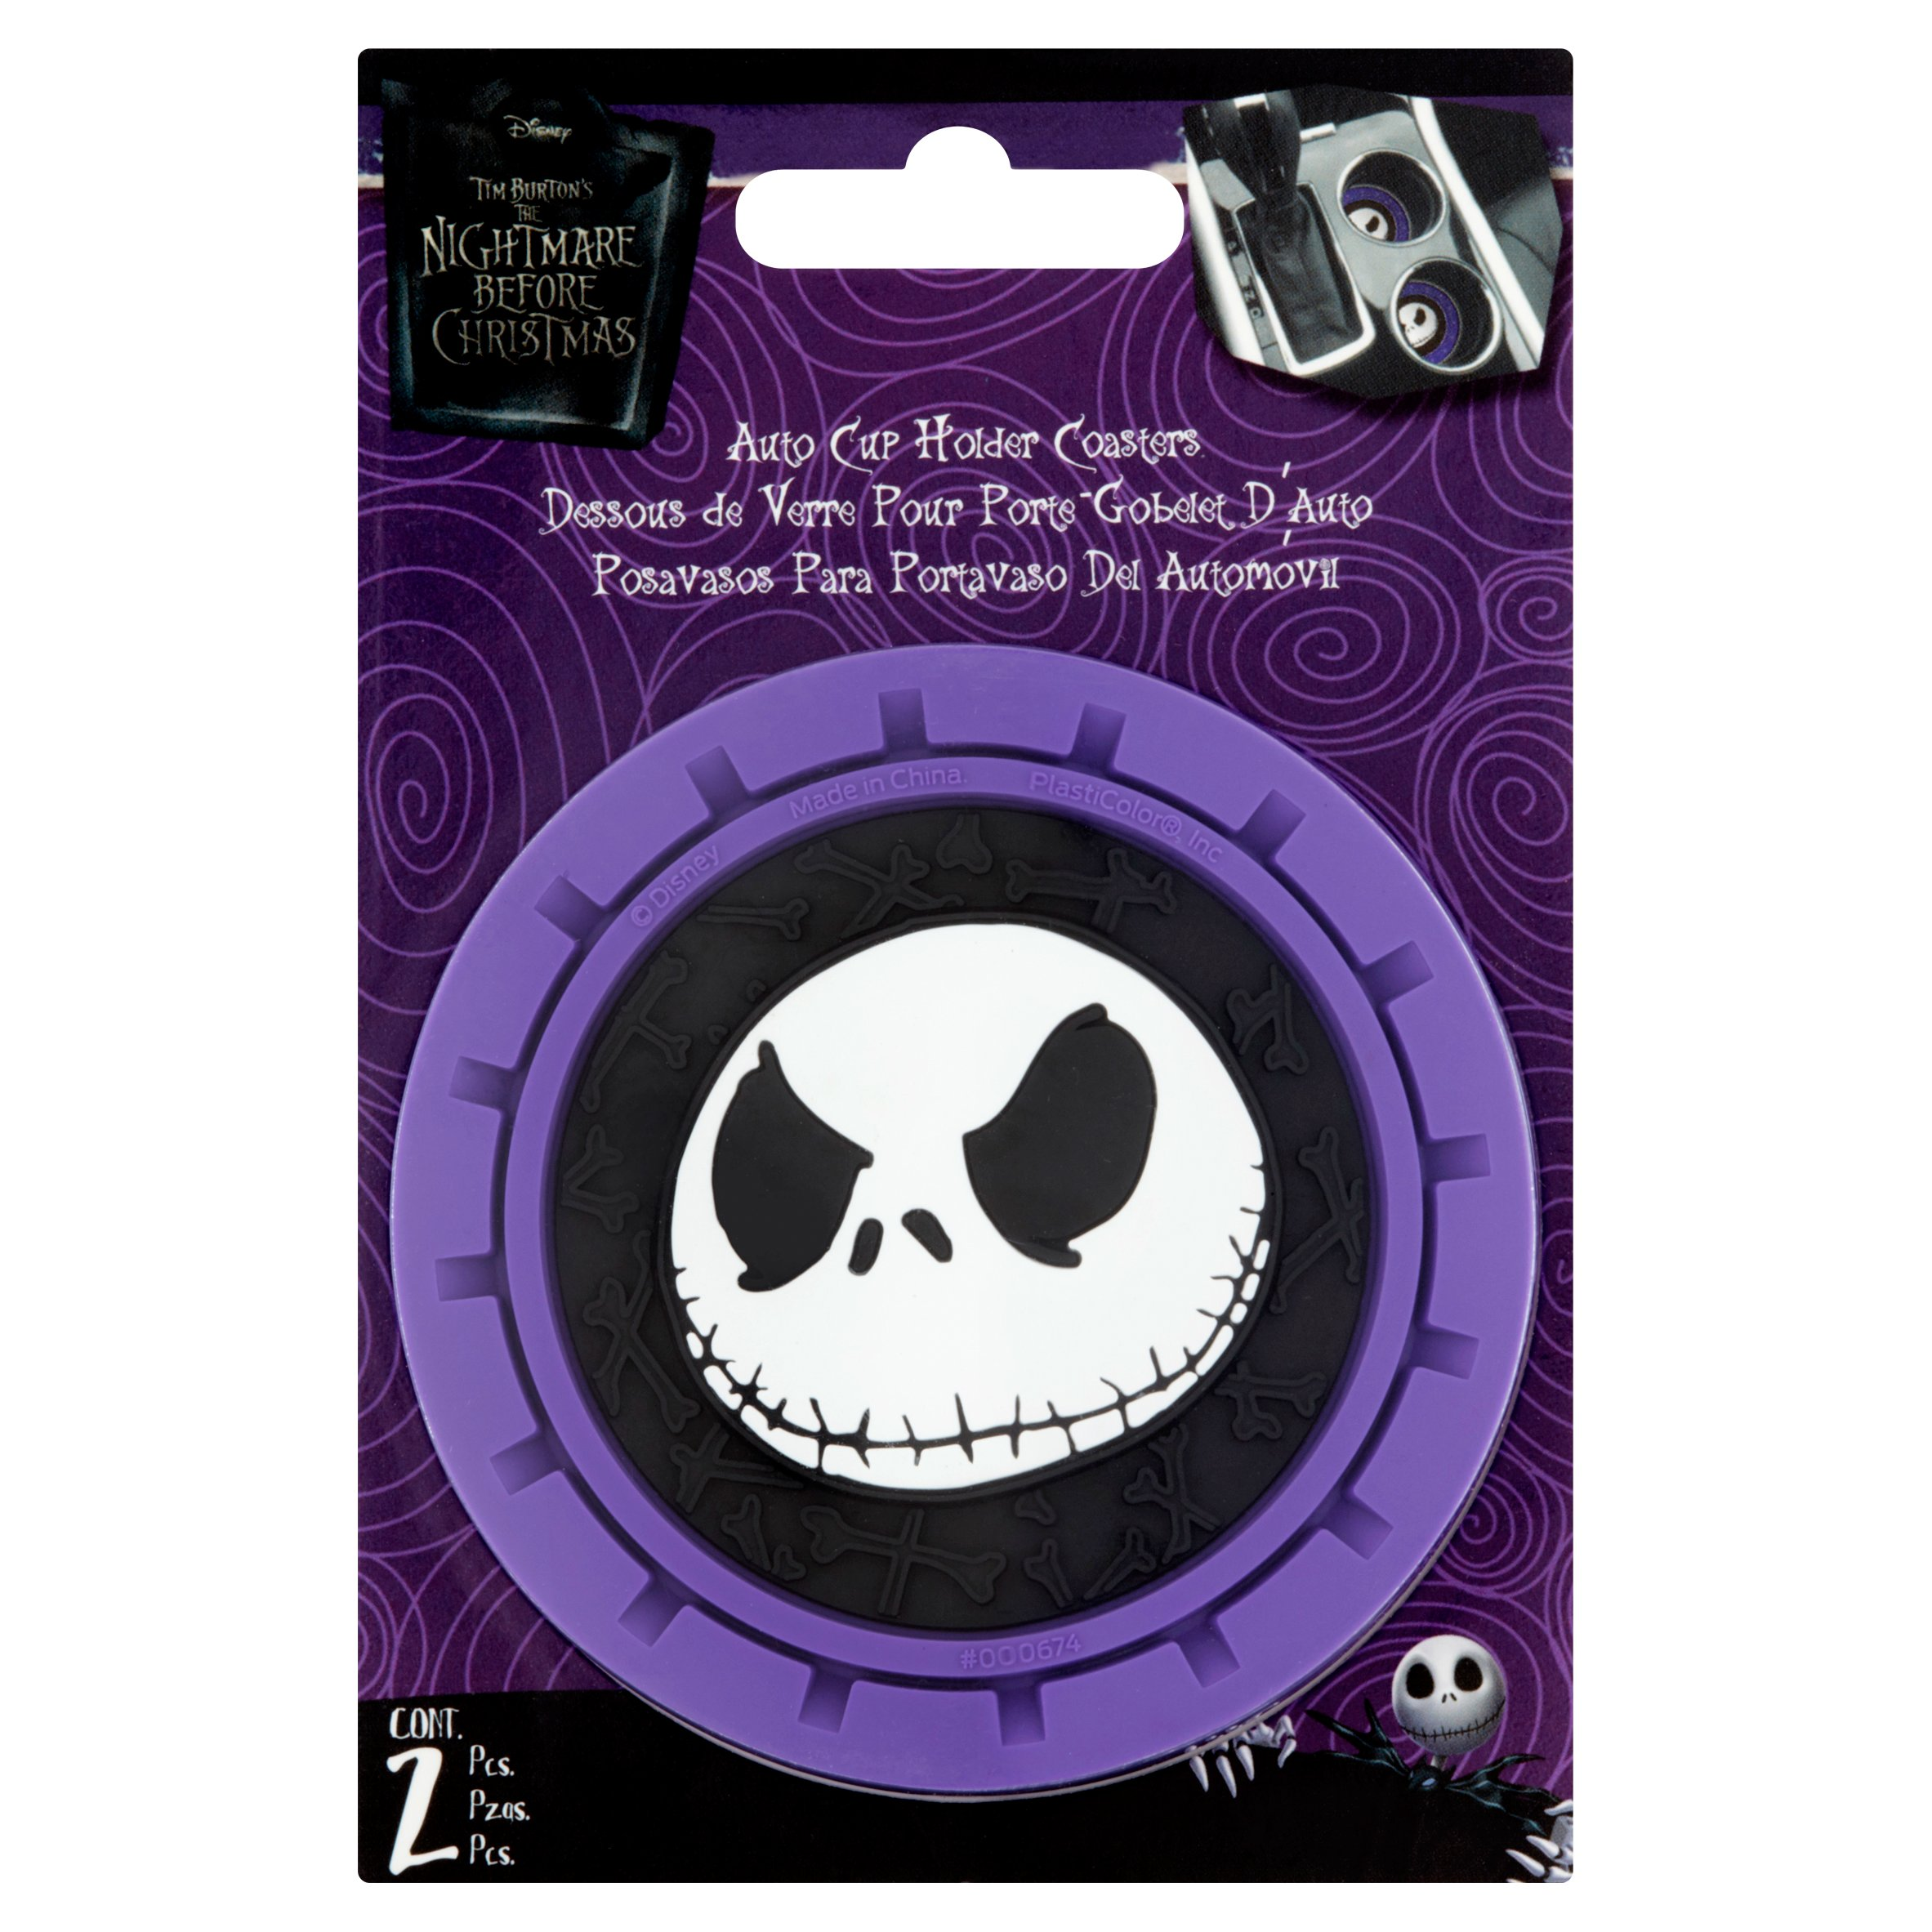 Disney Tim Burton's The Nightmare Before Christmas Auto Cup Holder Coasters, 2 count